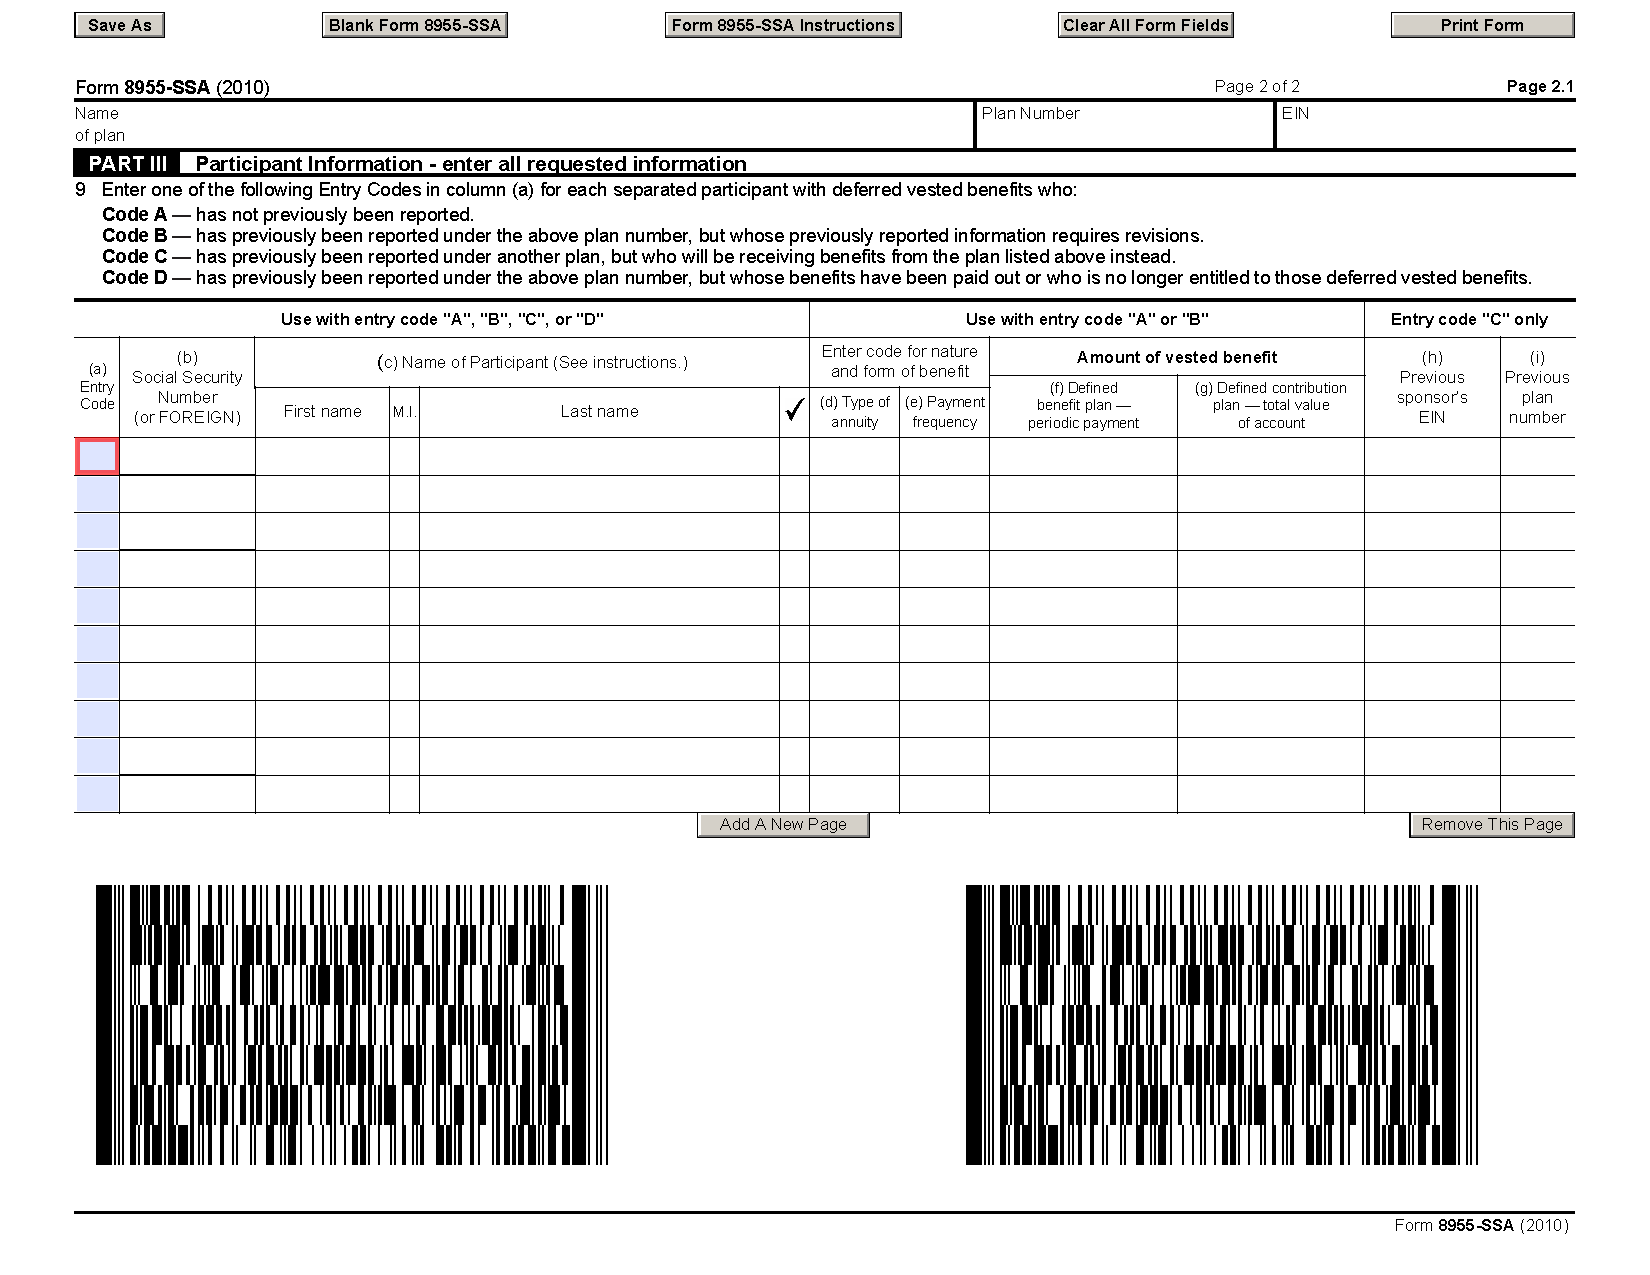 Form 8955 ssa annual registration statement identifying separated main navigation falaconquin